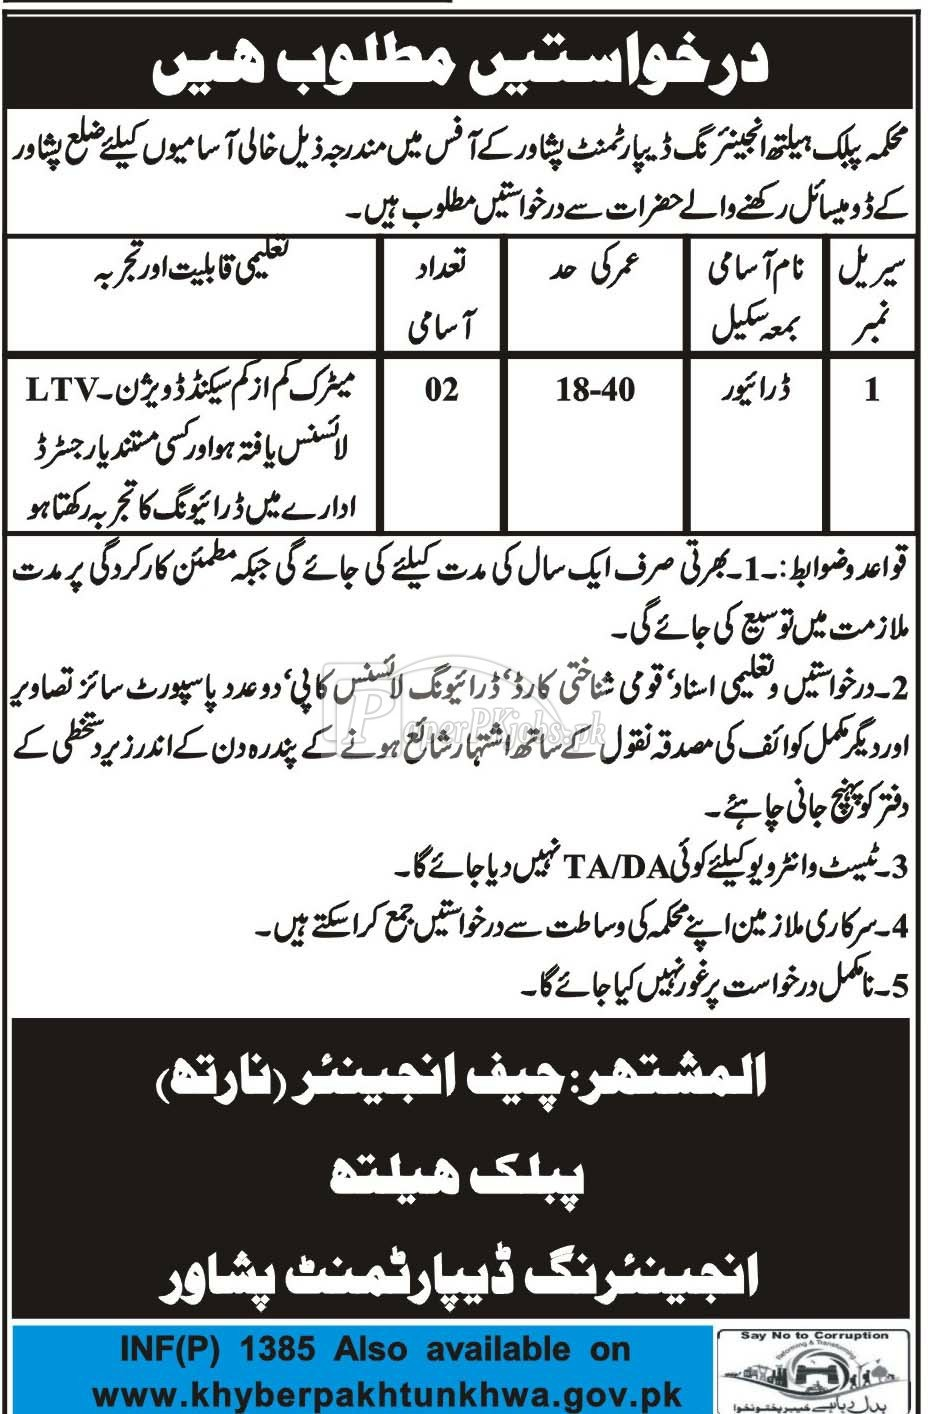 Public Health Engineering Department Peshawar Jobs 2018